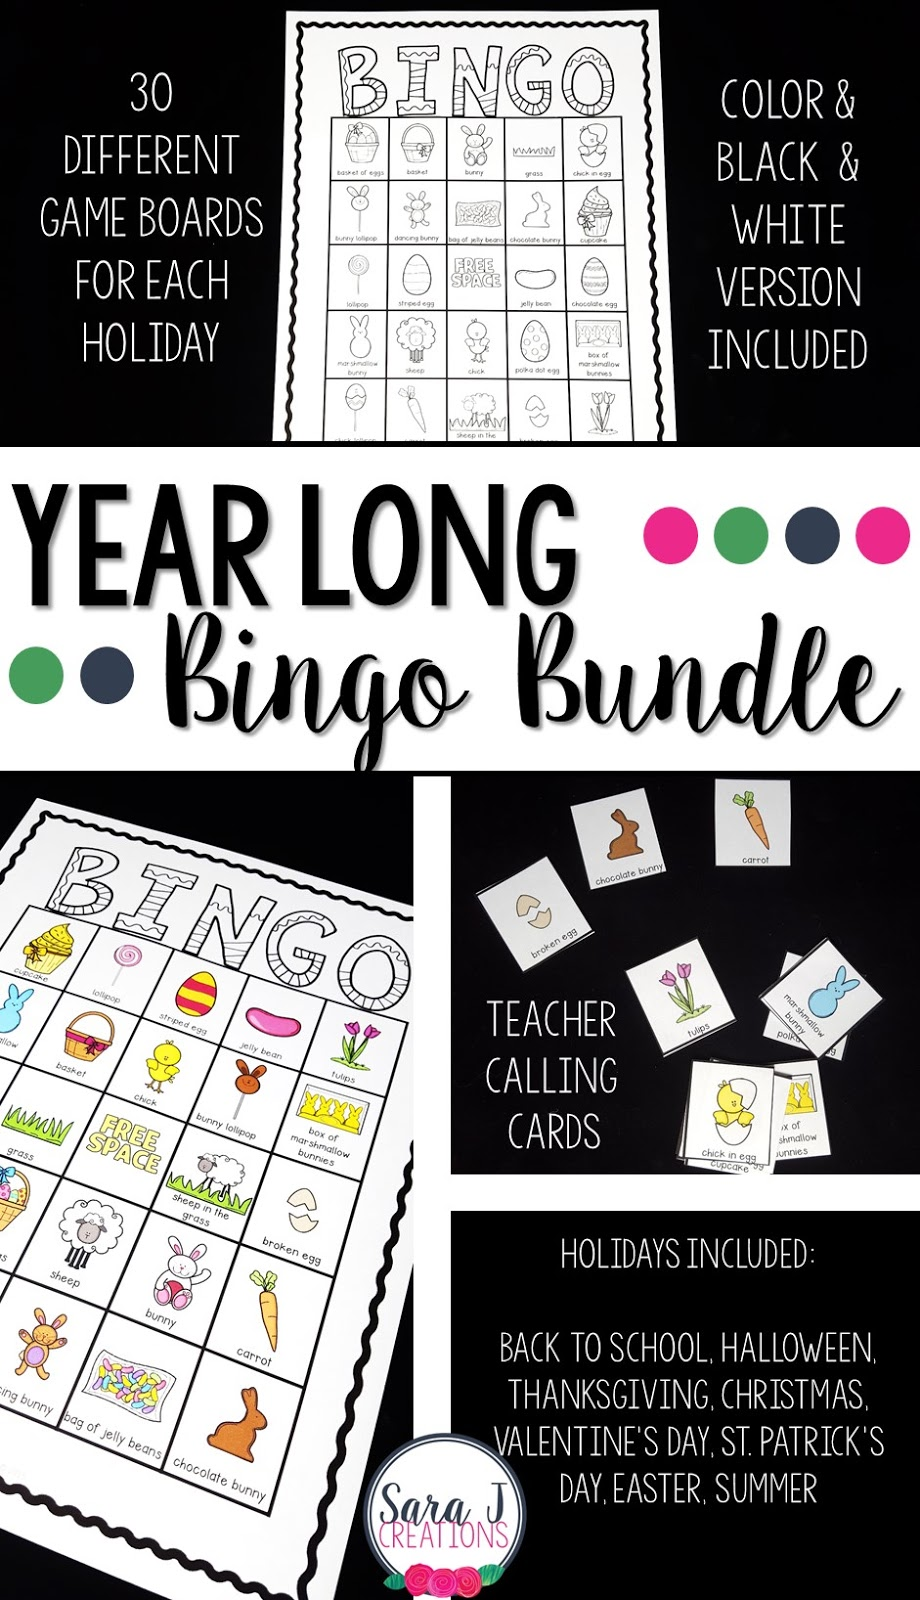 Bingo cards for the whole year!  Includes 8 different sets - Back to School, Halloween, Thanksgiving, Christmas, Valentine's Day, St. Patrick's Day, Easter and Summer.  Play and have fun all year long with these quick and easy to use printables.